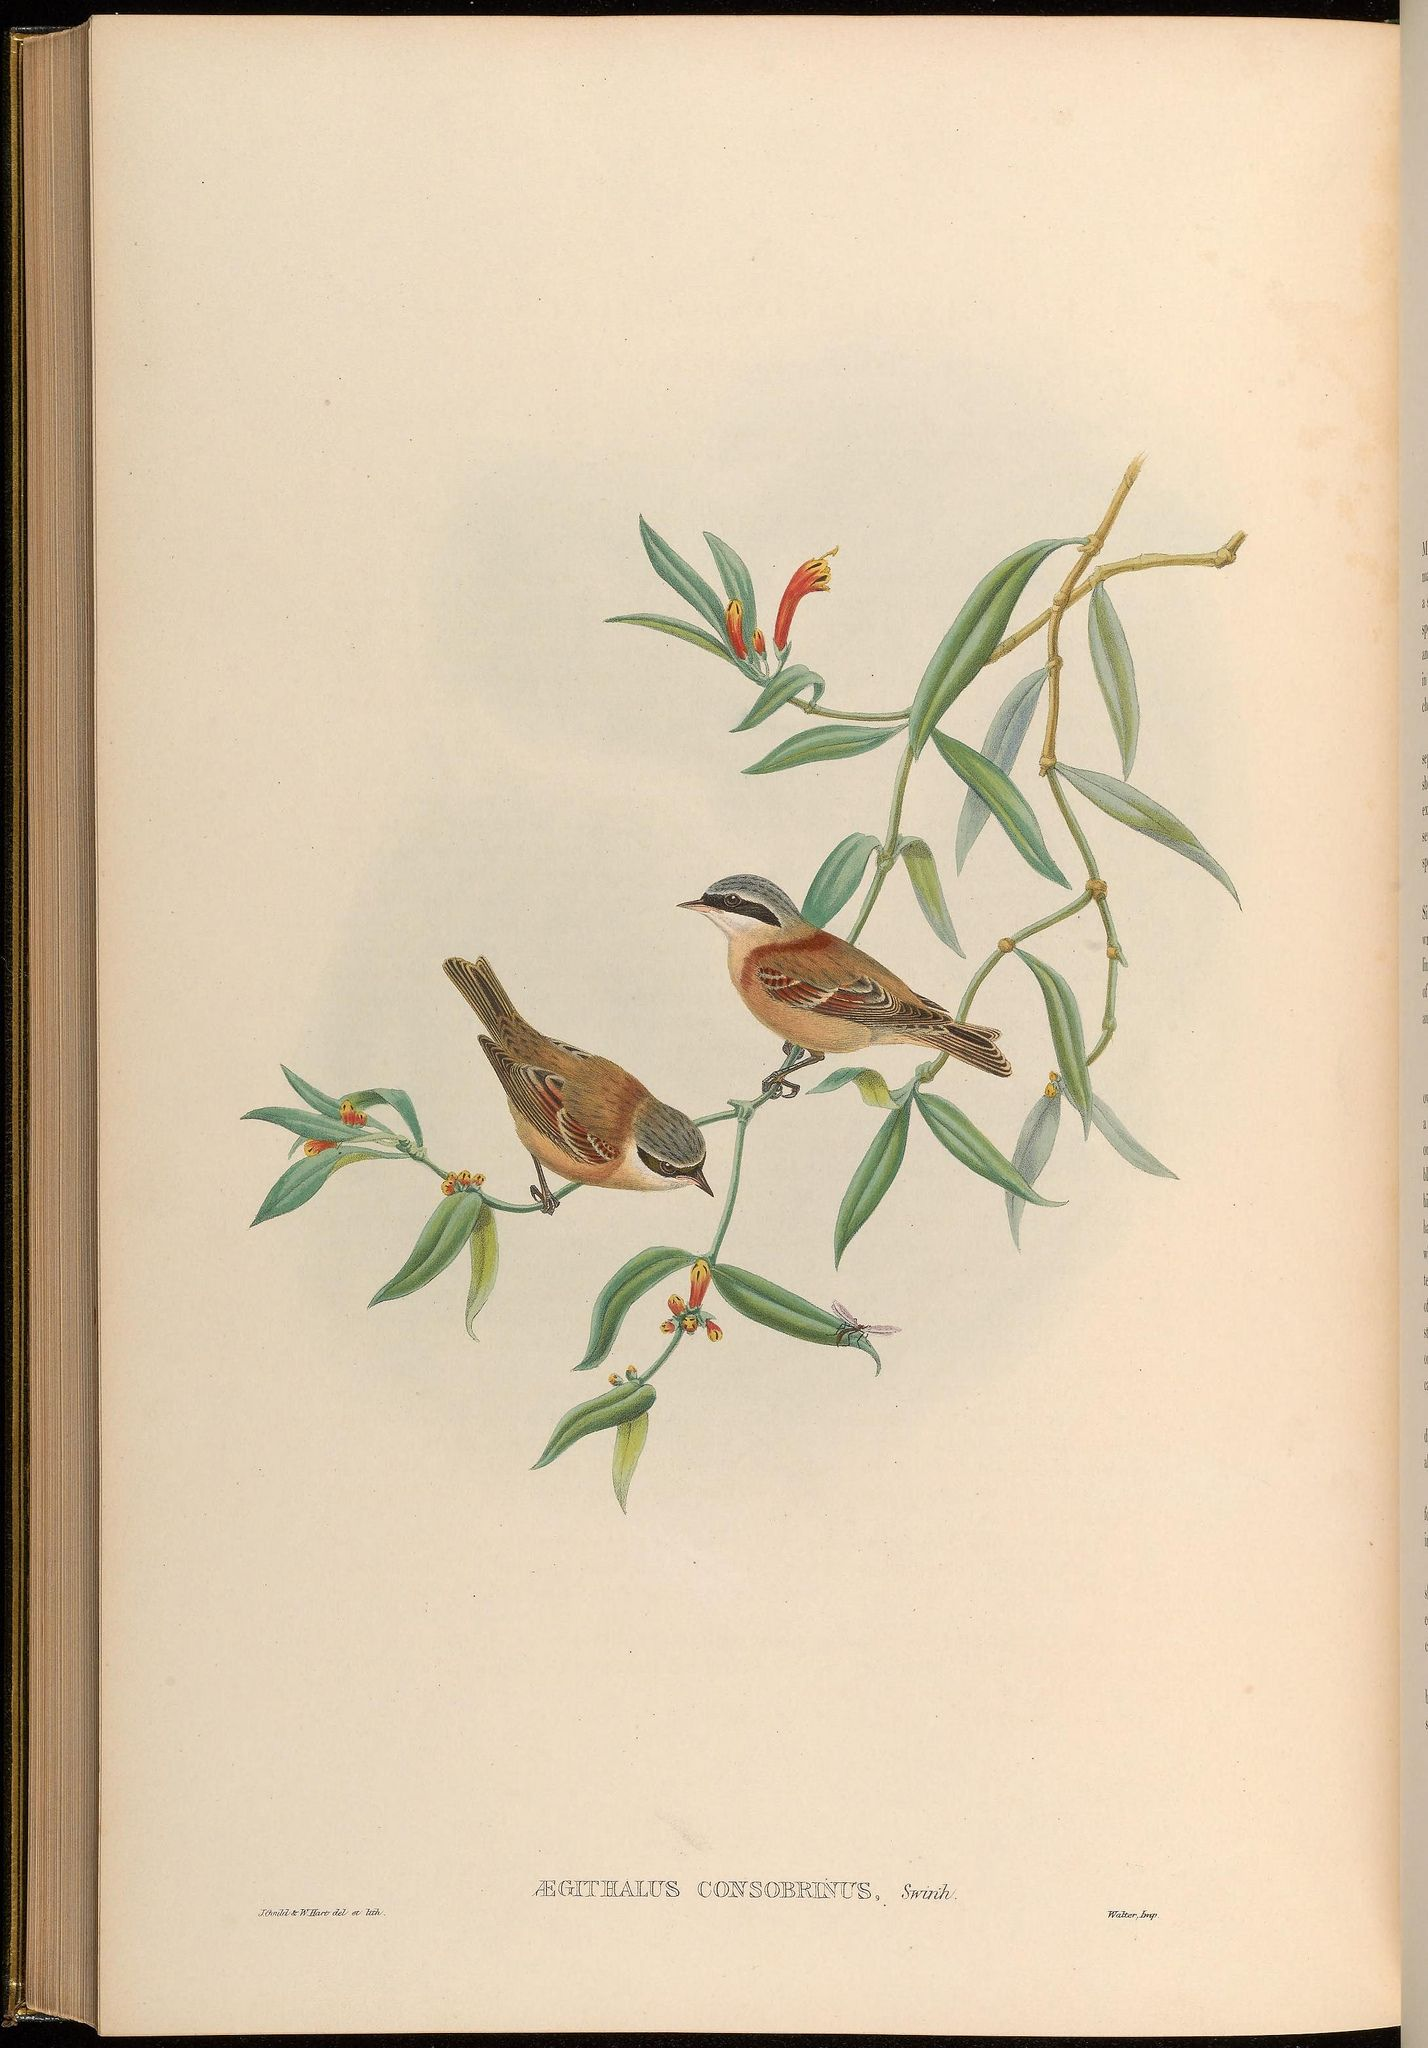 Birds of Asia / by John Gould.. London :Printed by Taylor and Francis, pub. by the author,1850-1883.. biodiversitylibrary.org/page/38534269